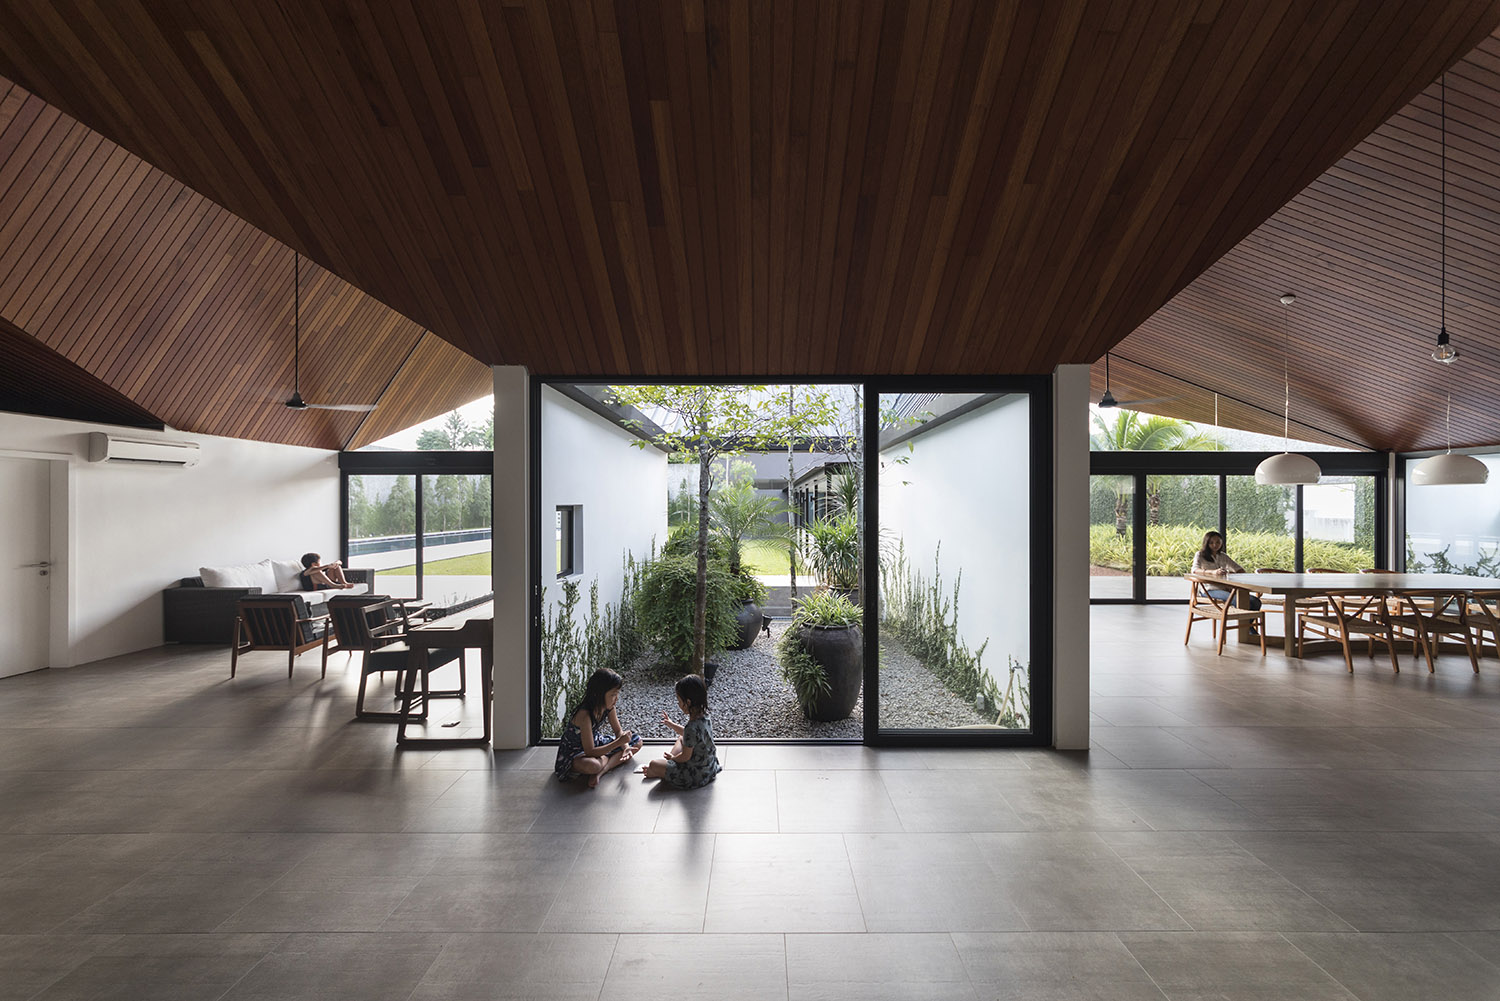 Without the presence of walls, living occur organically in the communal spaces. Fabian Ong